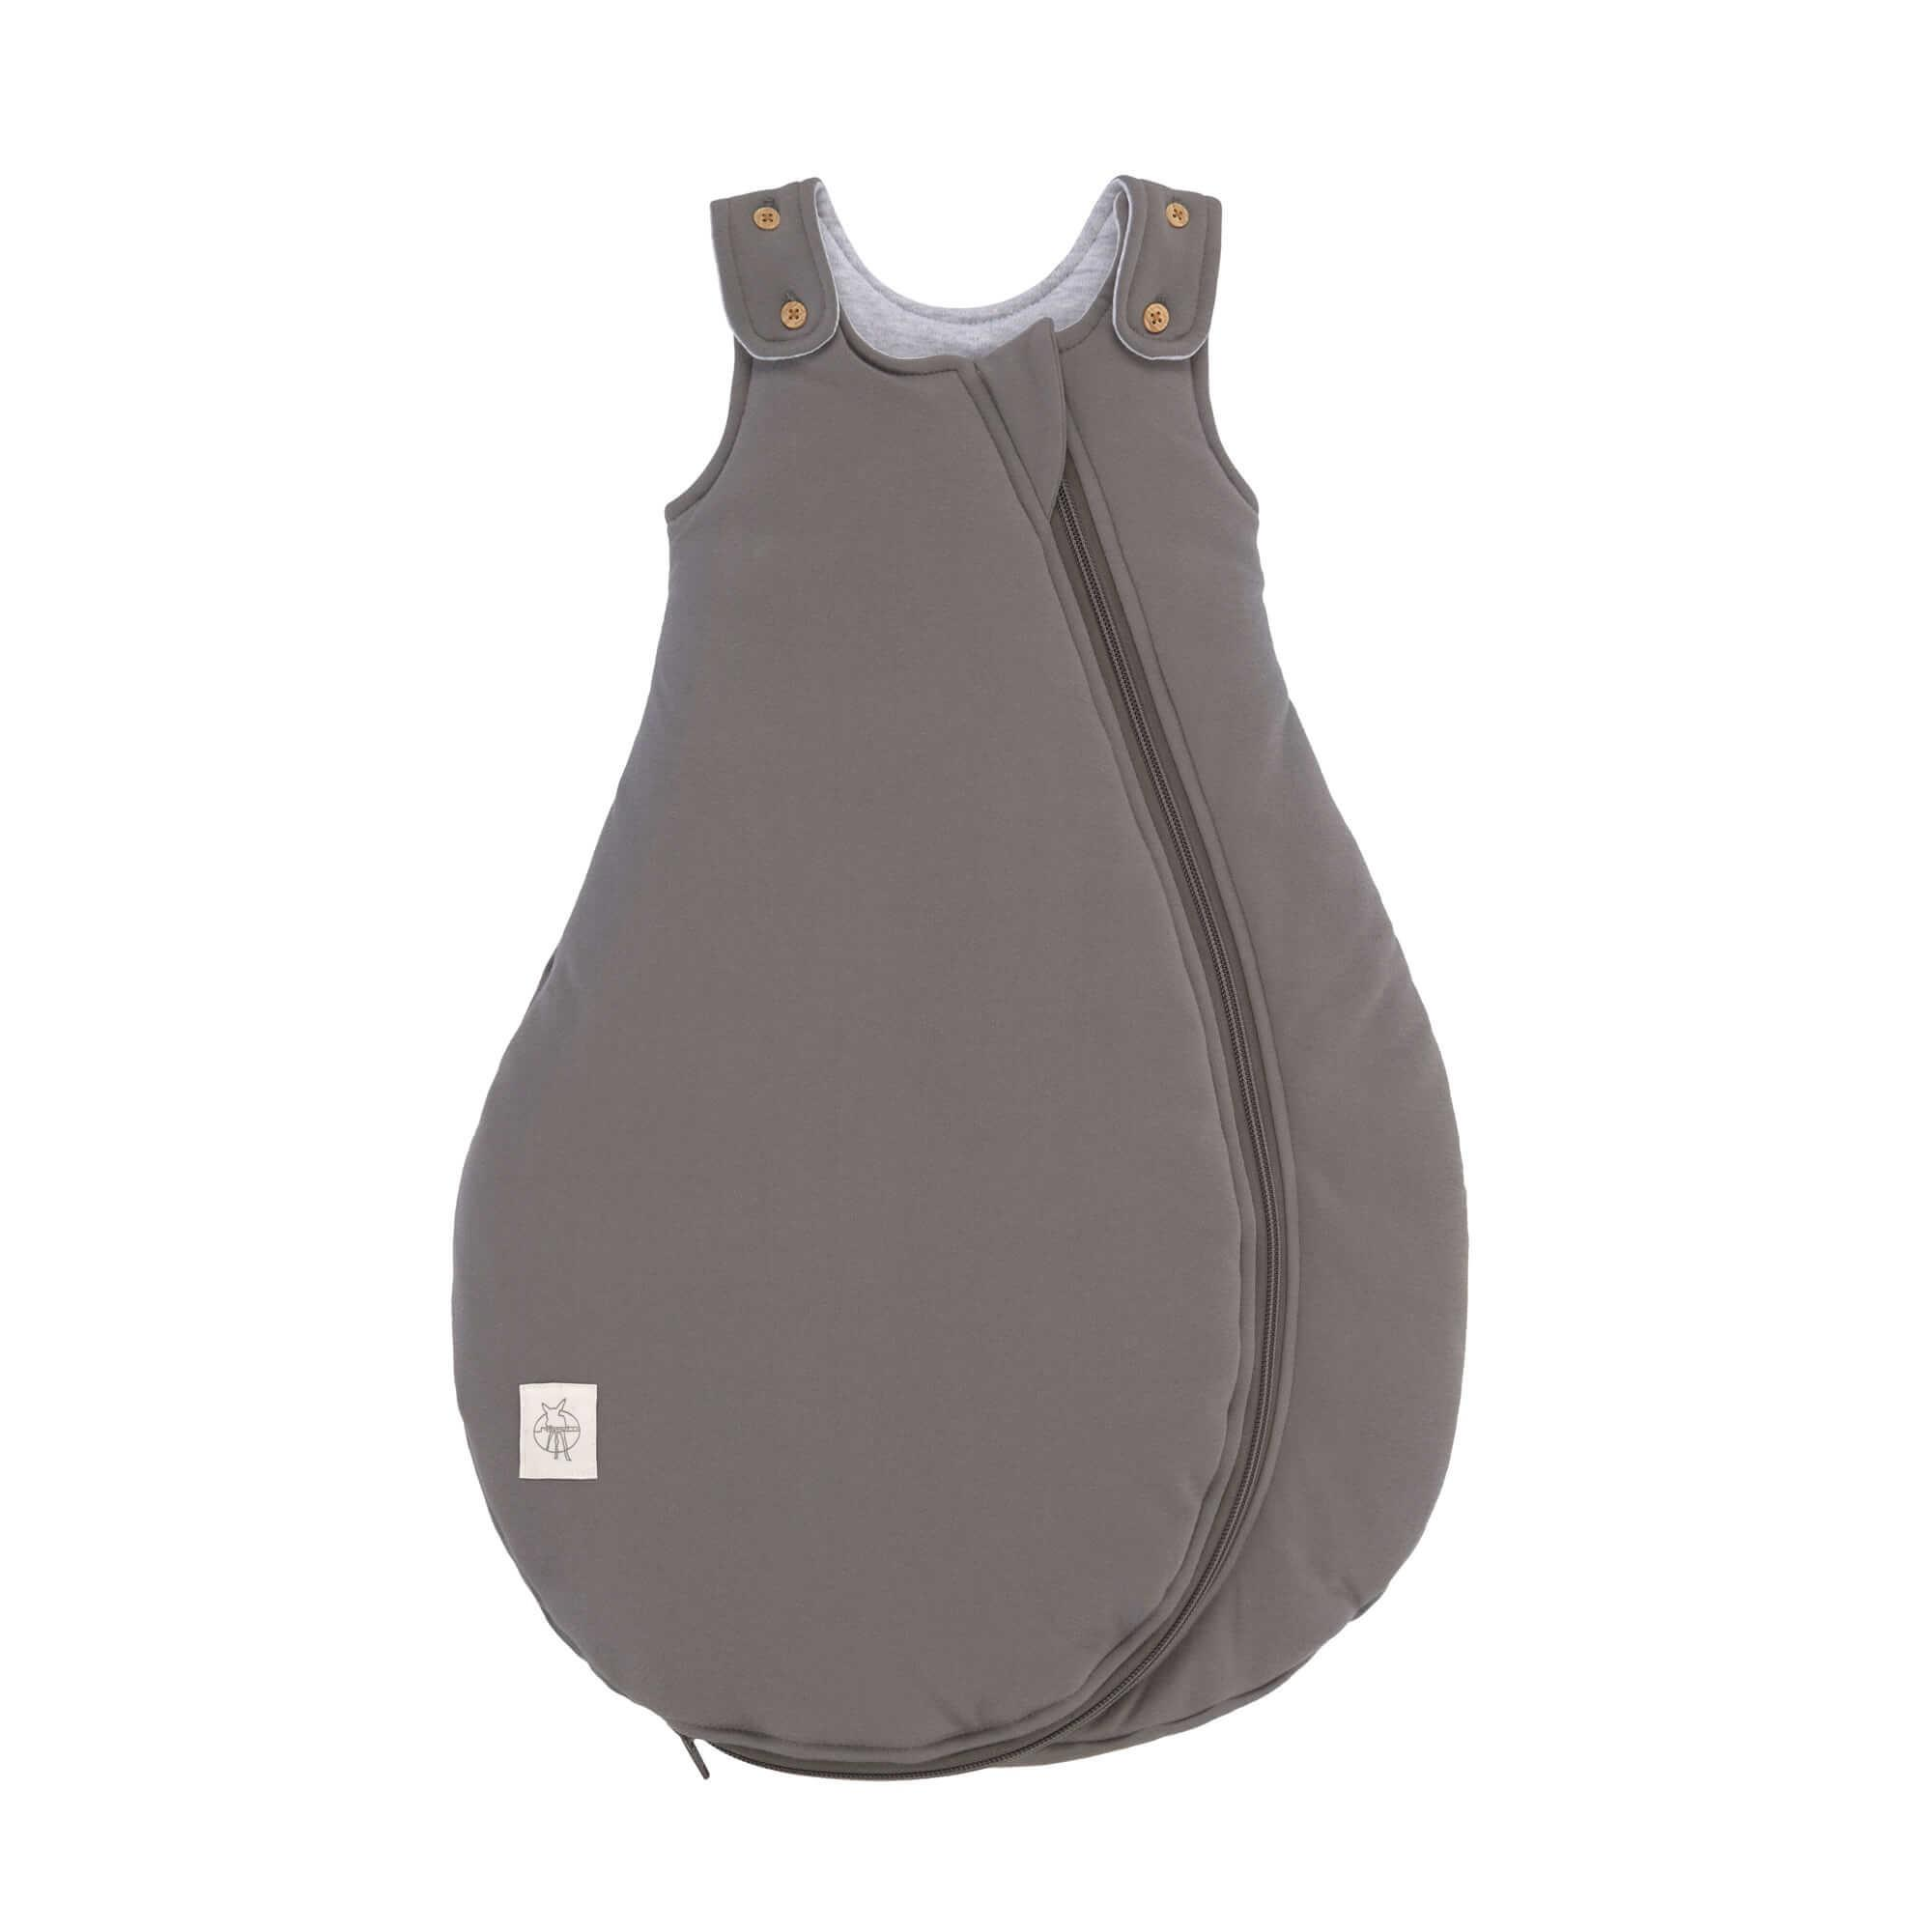 Lassig - Baby Sleeping Bag anthracite, 50/56 0-2M, all season edition